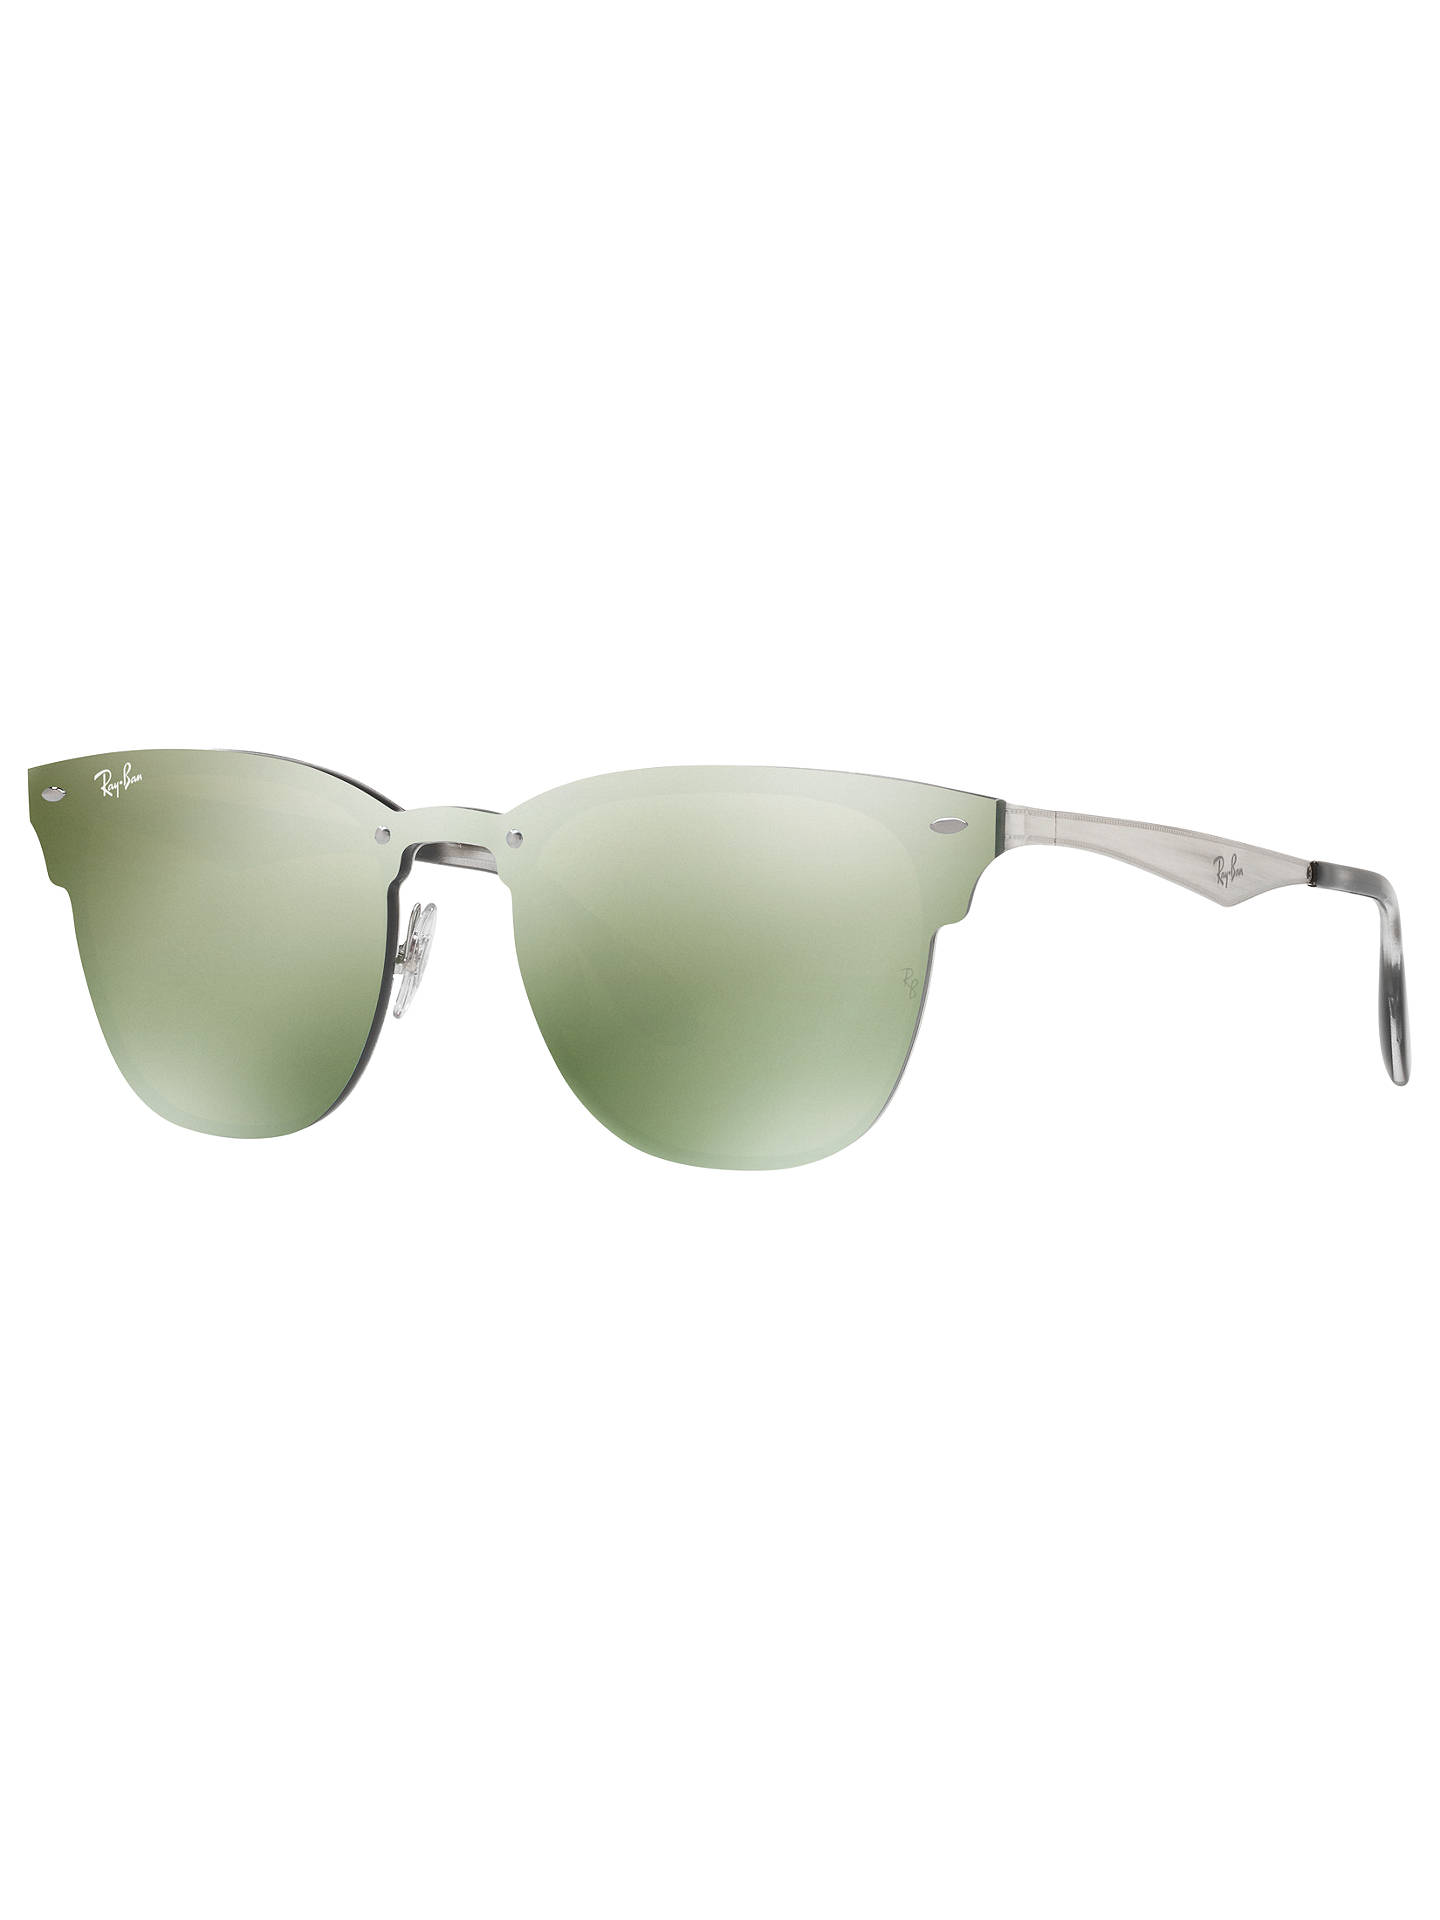 8745c1eeda Buy Ray-Ban RB3576N Blaze Clubmaster Square Sunglasses